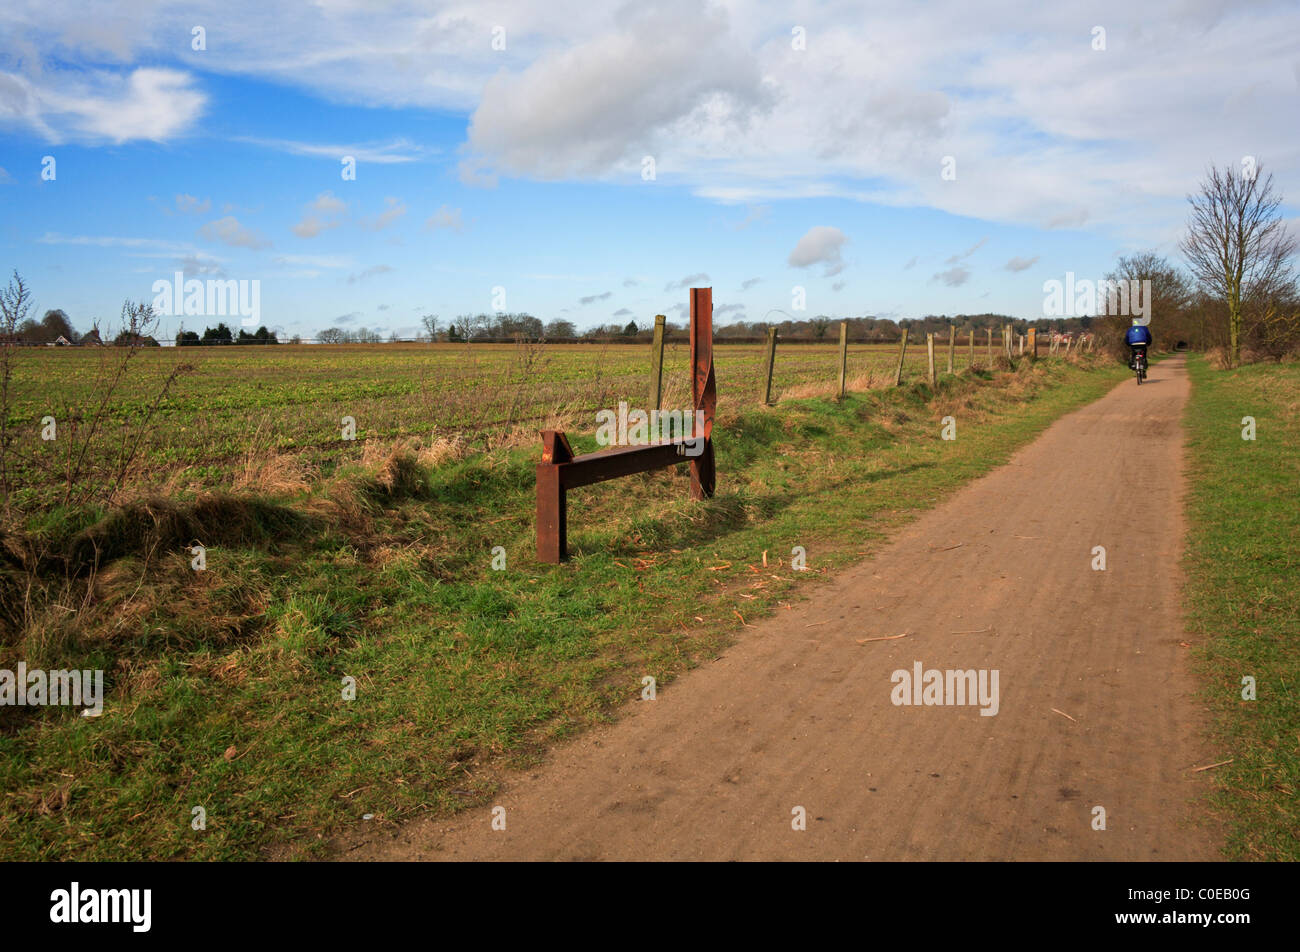 The Marriott's Way long distance footpath and cycle way in open countryside at Costessey, Norfolk, England, - Stock Image